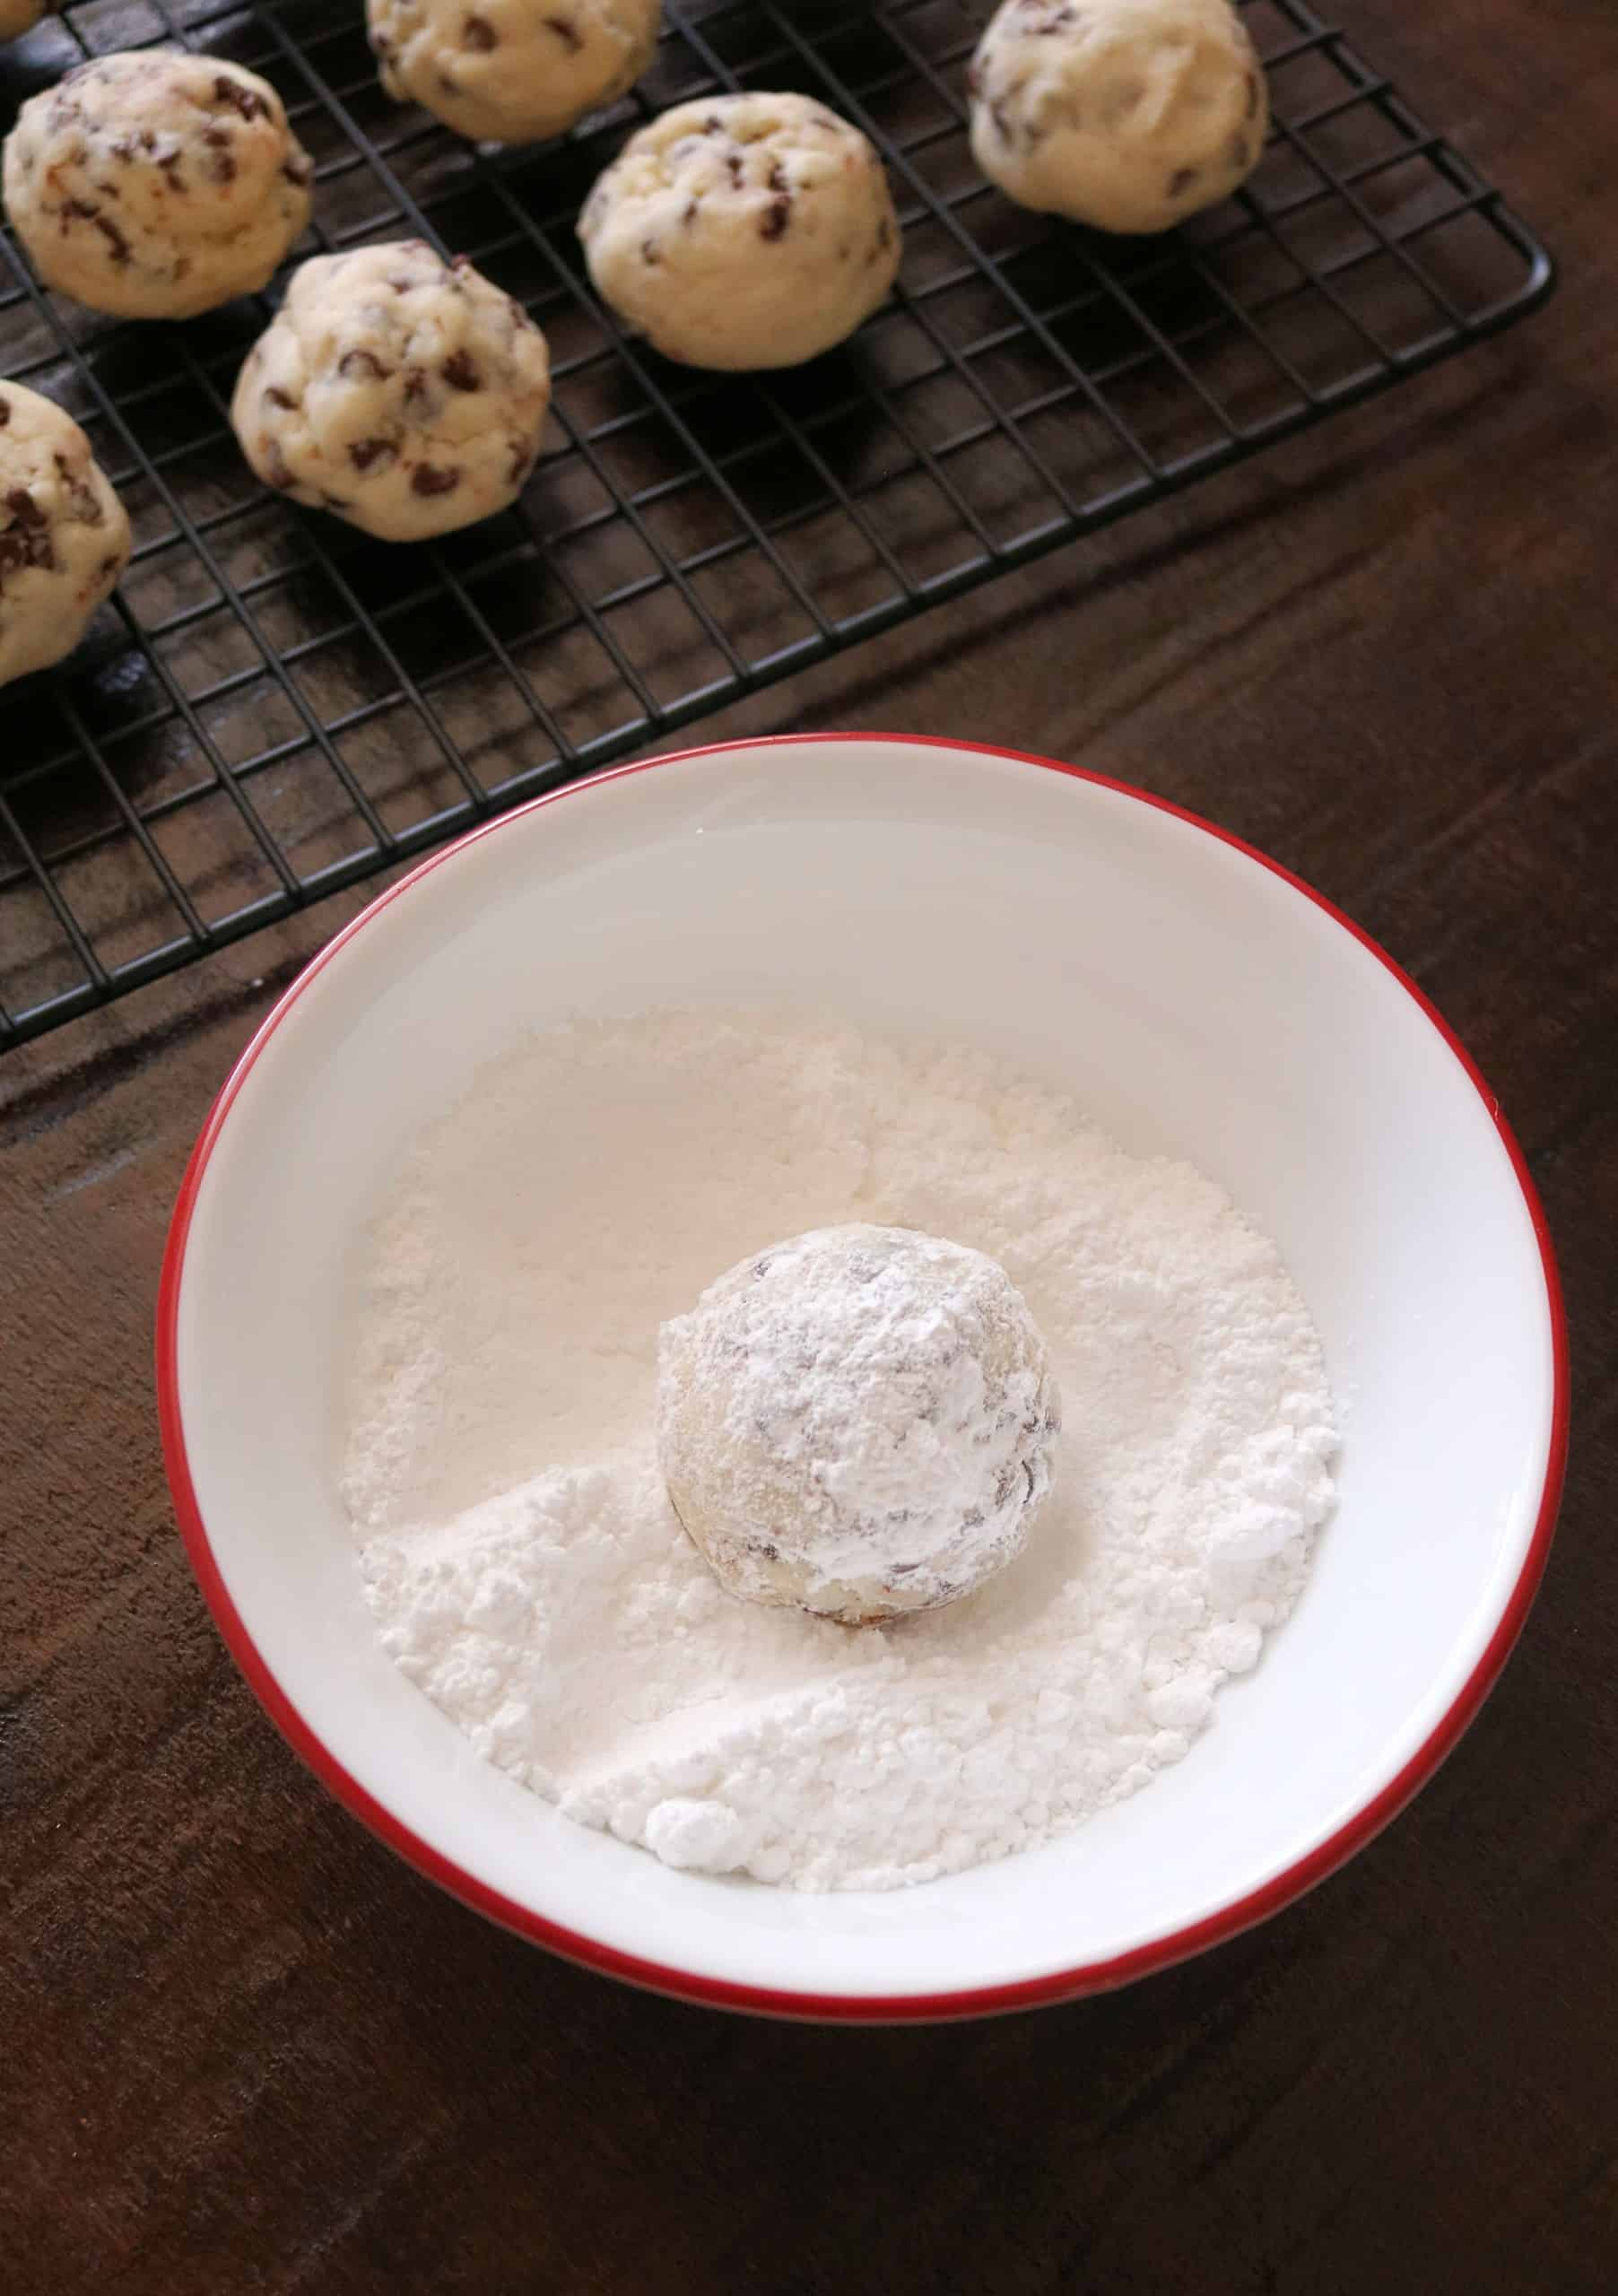 Try my Best Chocolate Chip Snowball Cookies recipe for Christmas! These Chocolate Chip Snowball Cookies are sweet, delicious, buttery cookies rolled in powdered sugar and melt in your mouth! They're nut-free, egg-free, and so easy to make. #snowballcookies #christmascookies #cookierecipe